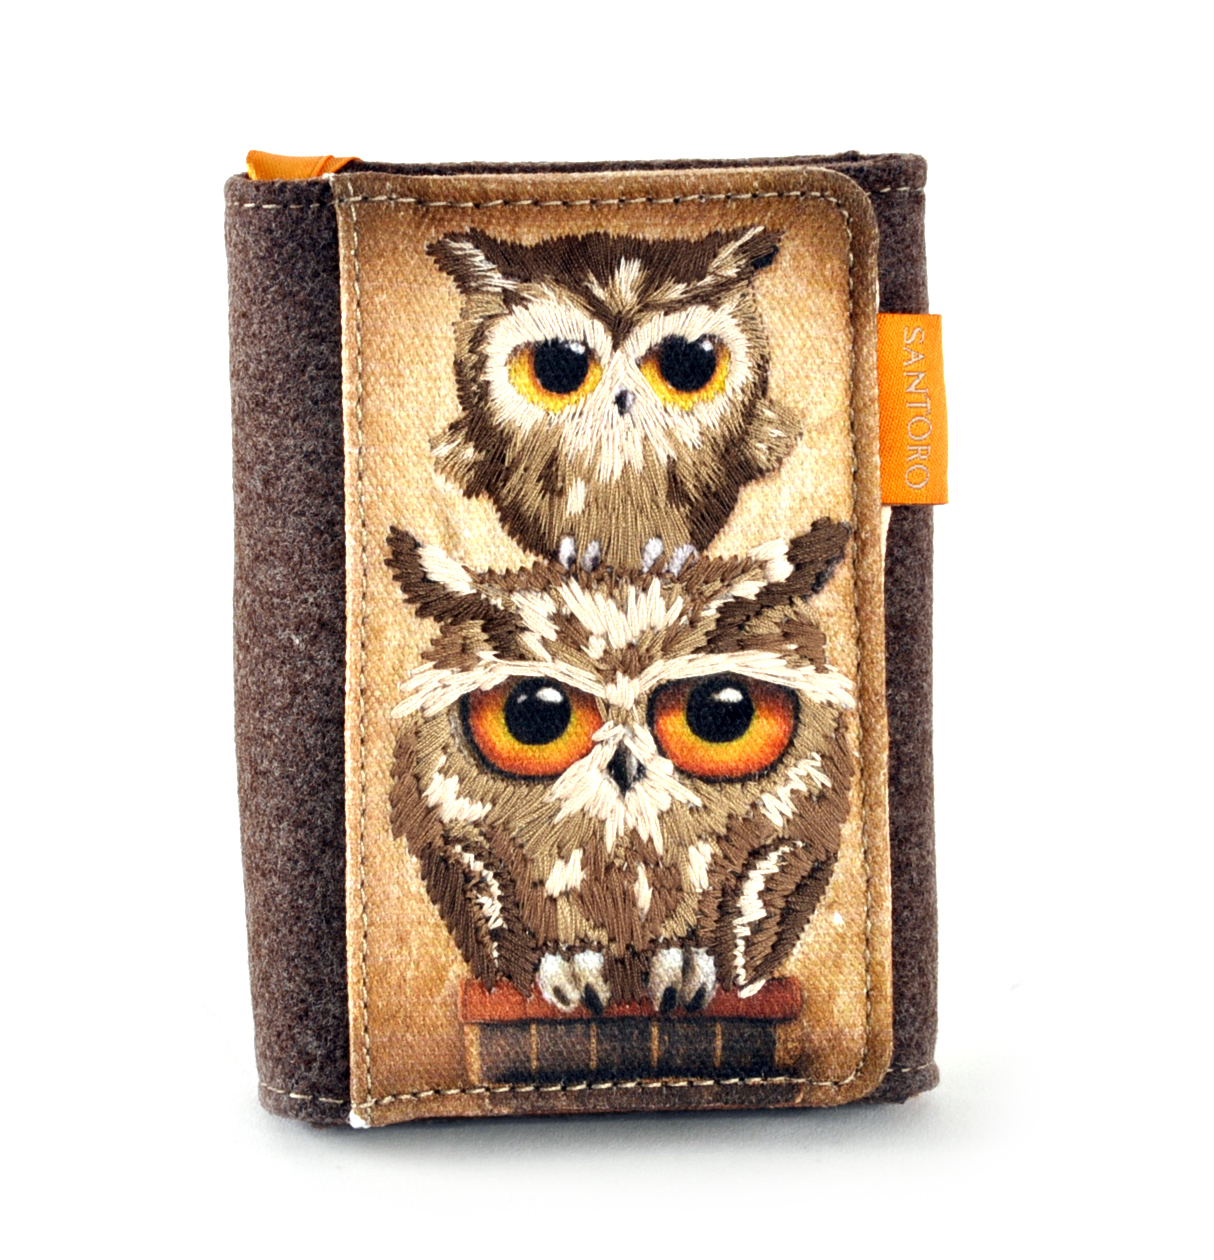 Book Owls - Wool & Canvas Wallet By Santoro CUsFB9gSFh